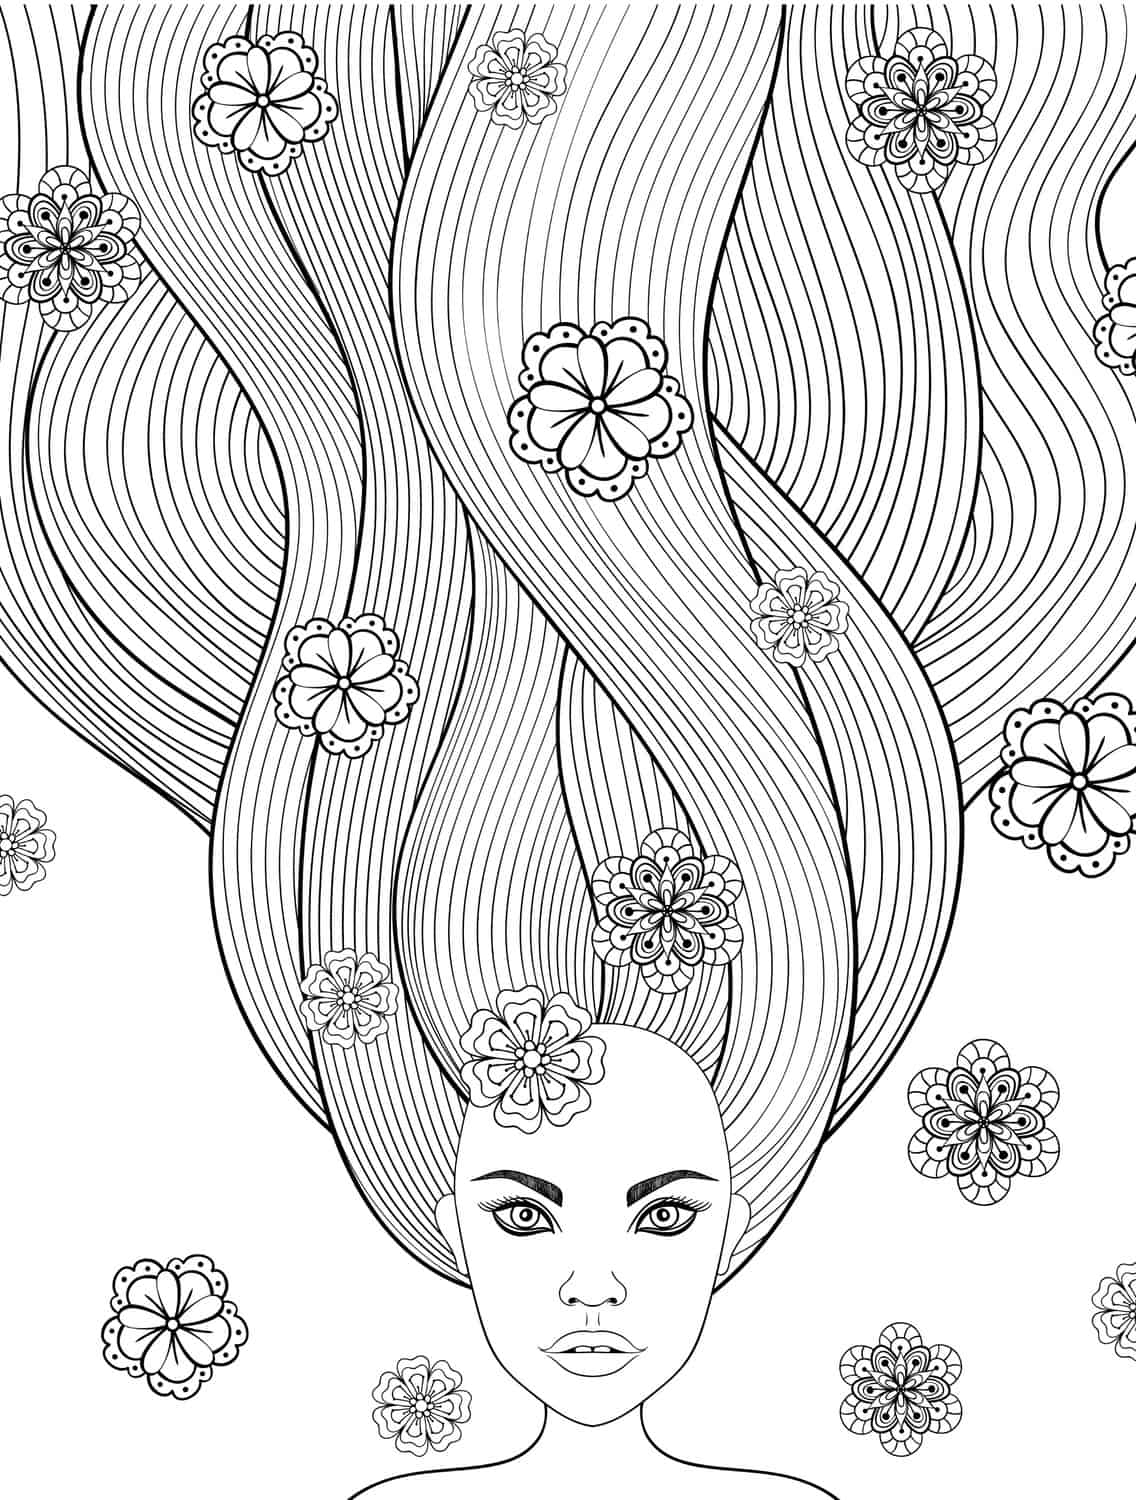 download free printable adult coloring pages with long hair